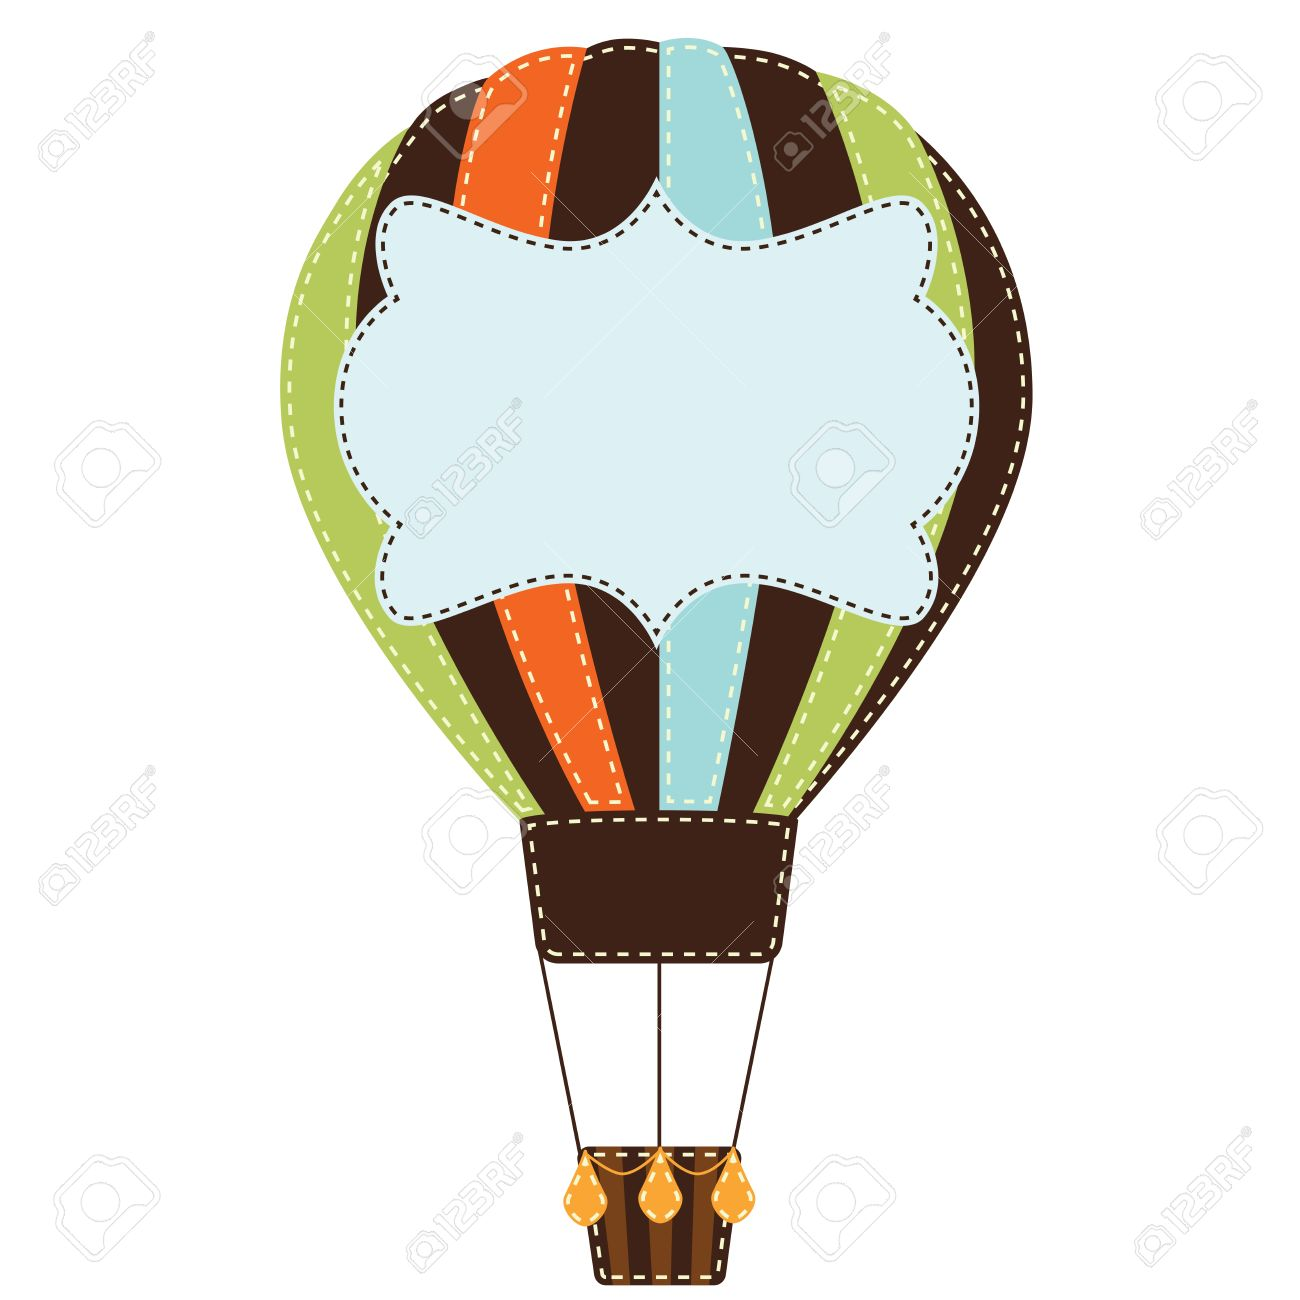 Vintage Or Retro Hot Air Balloon On Transparent Background With